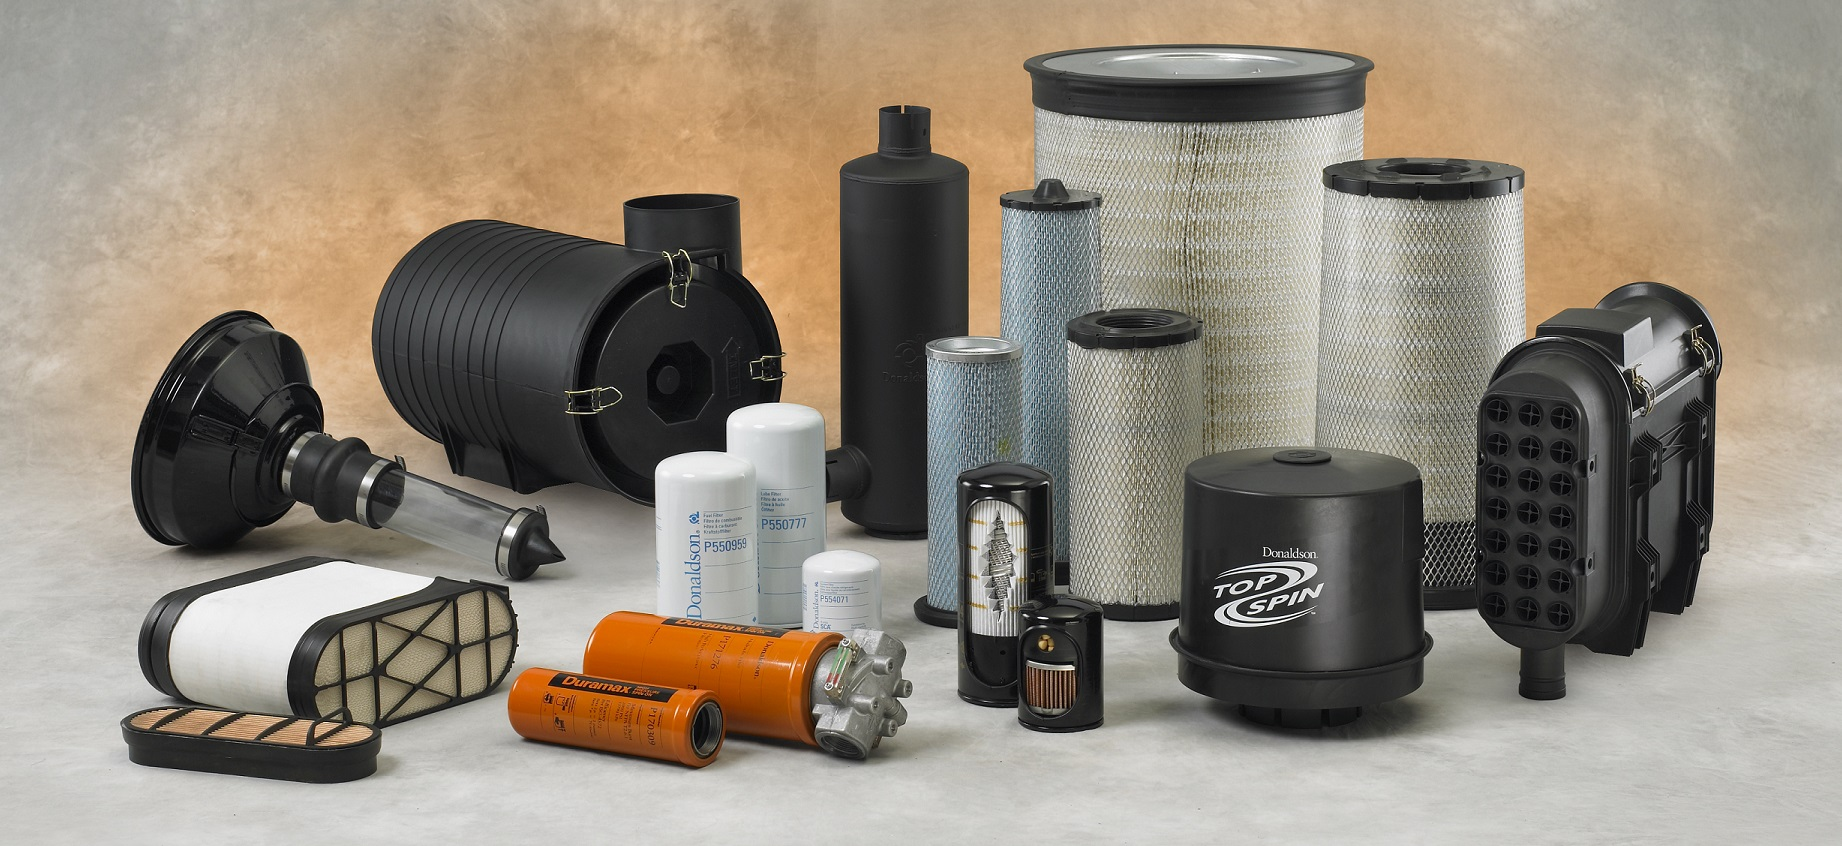 Group of Donaldson products - air, liquid and exhaust (SRG filter, TopSpin, XRB, Duramax, Muffler, liquid filters)